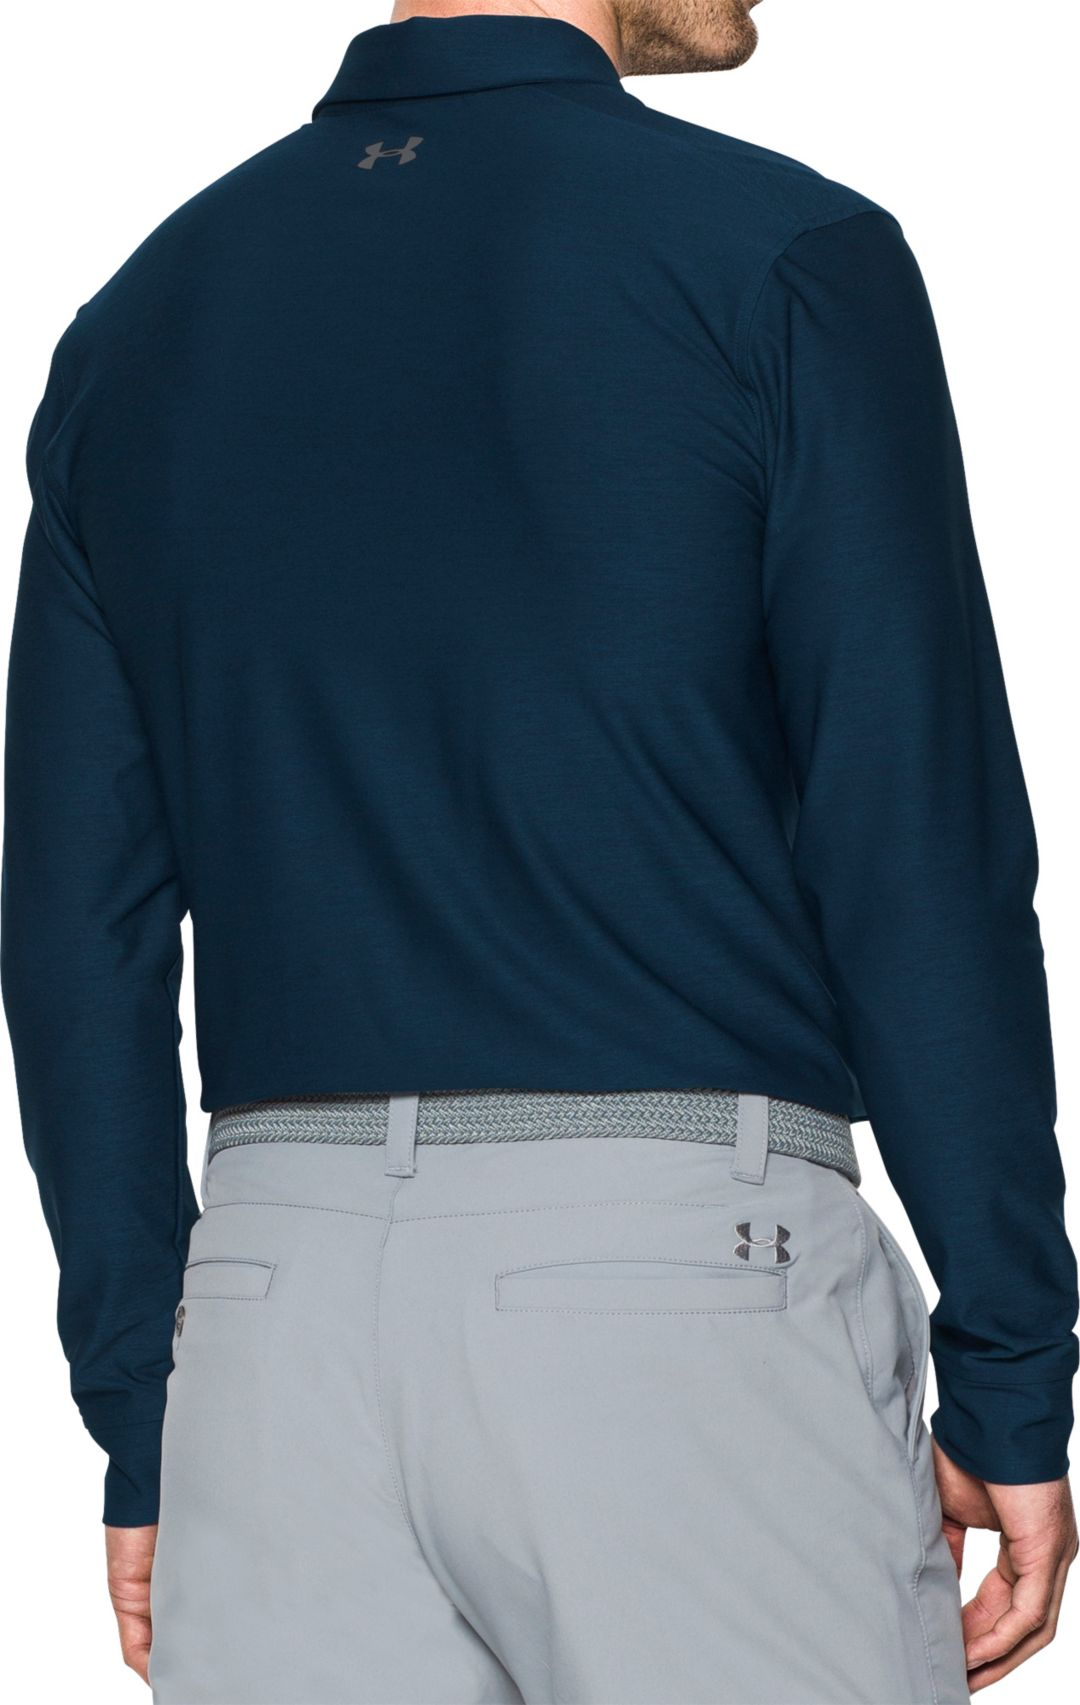 70be0eedf4 Under Armour Men's Long Sleeve Golf Polo | DICK'S Sporting Goods